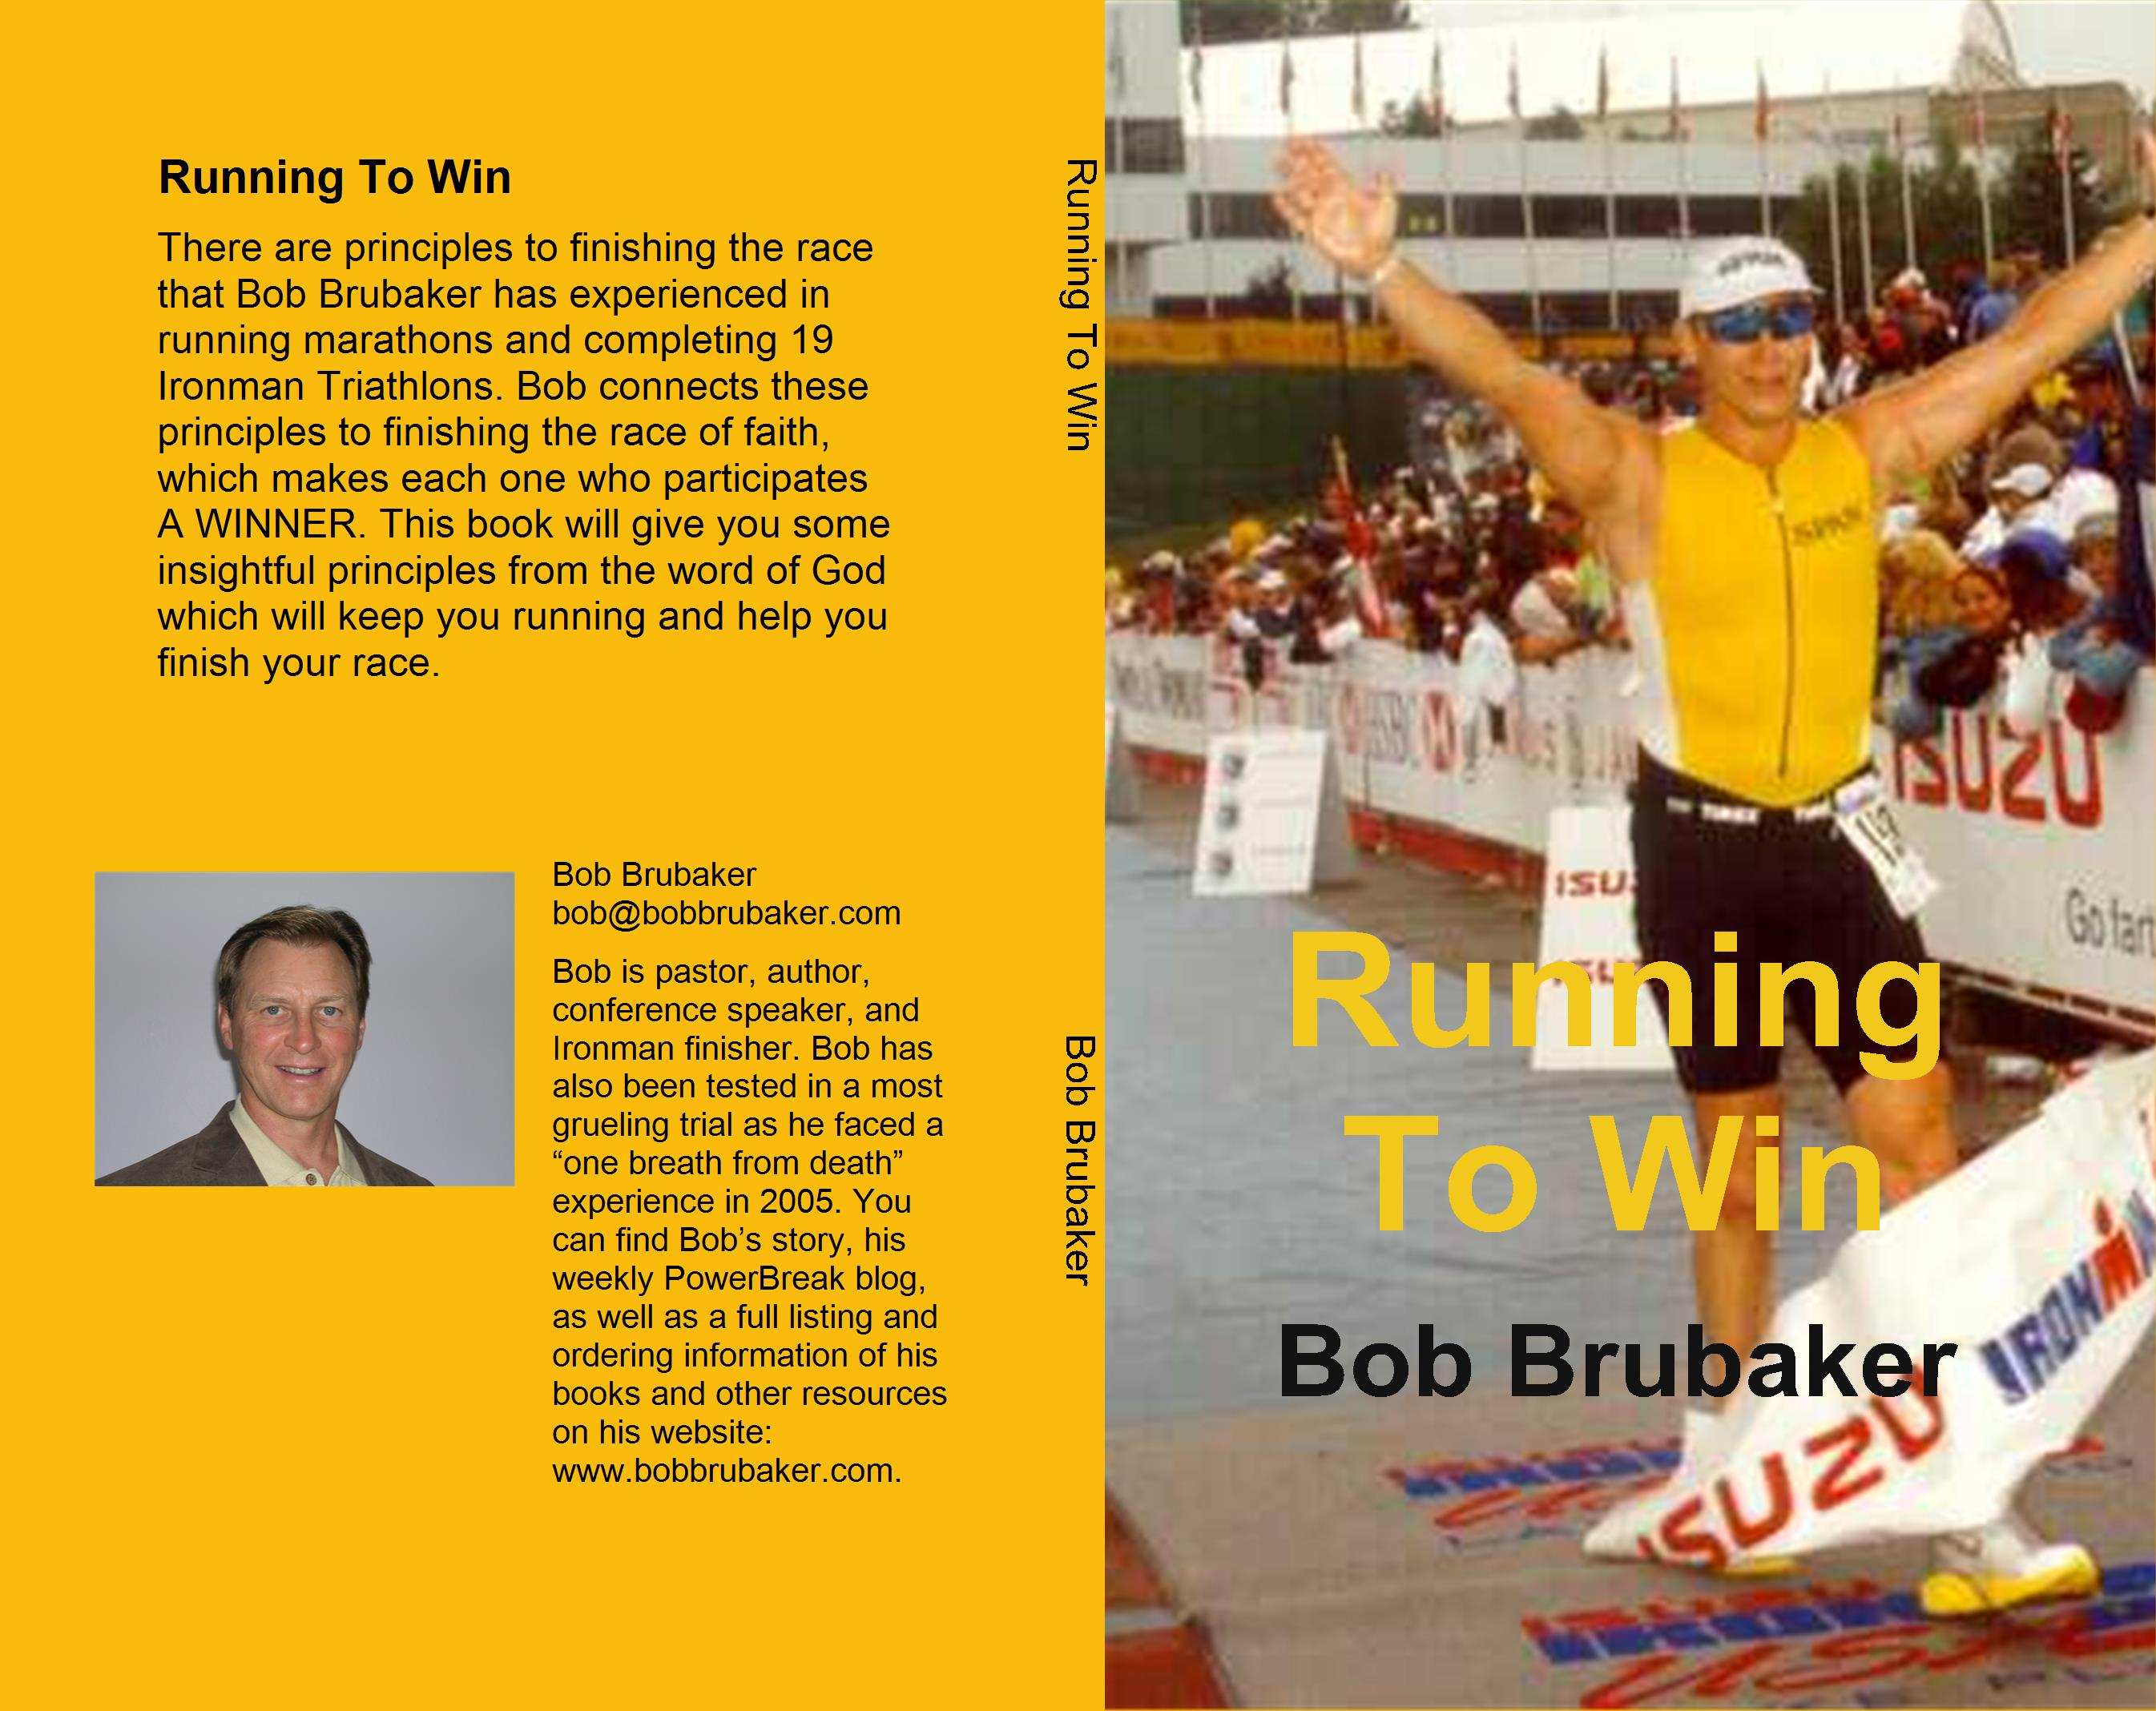 Running To Win cover image